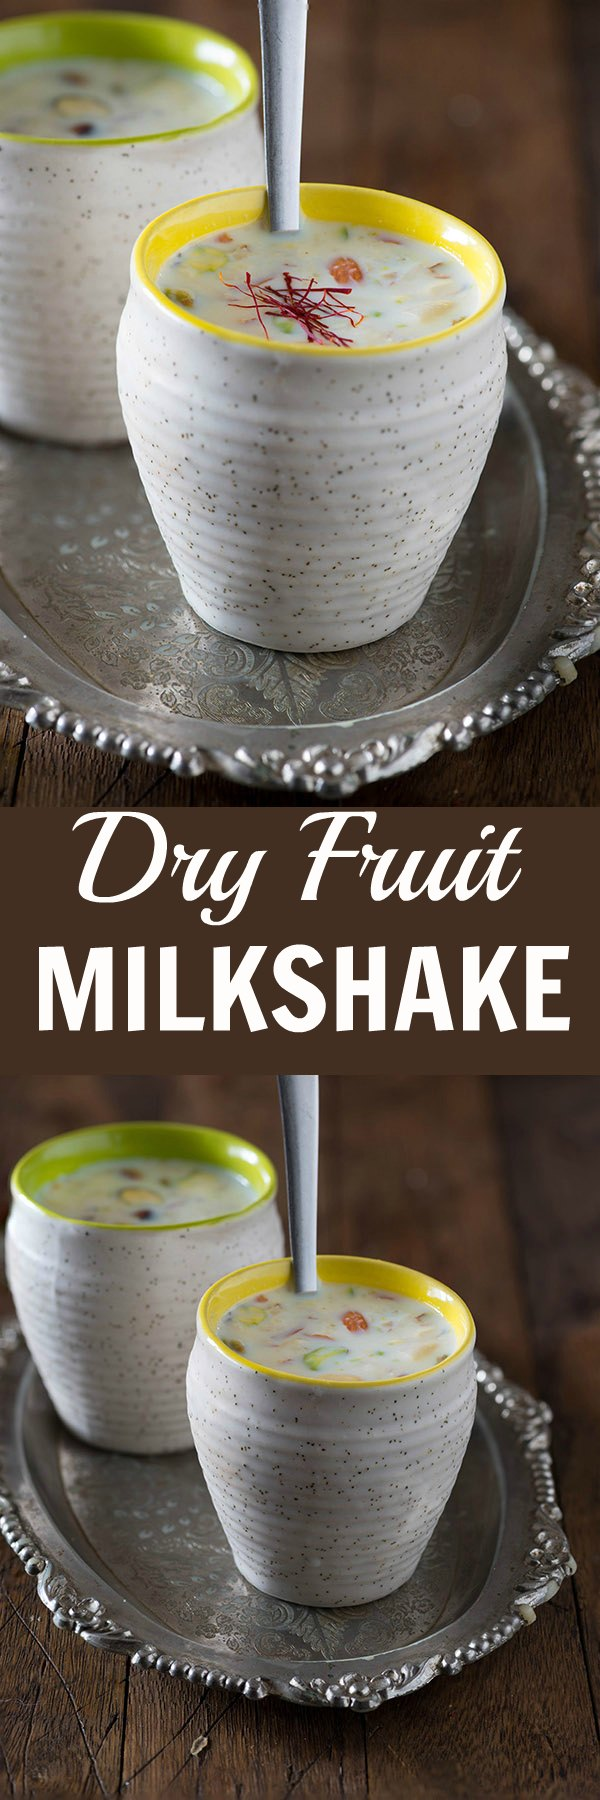 Dry fruit Milkshake is refreshing summer drink. Nutrition wise the milkshake is almost a meal in a glass with the goodness of milk, nuts, and saffron. It is perfect and rich milkshake for the breakfast.